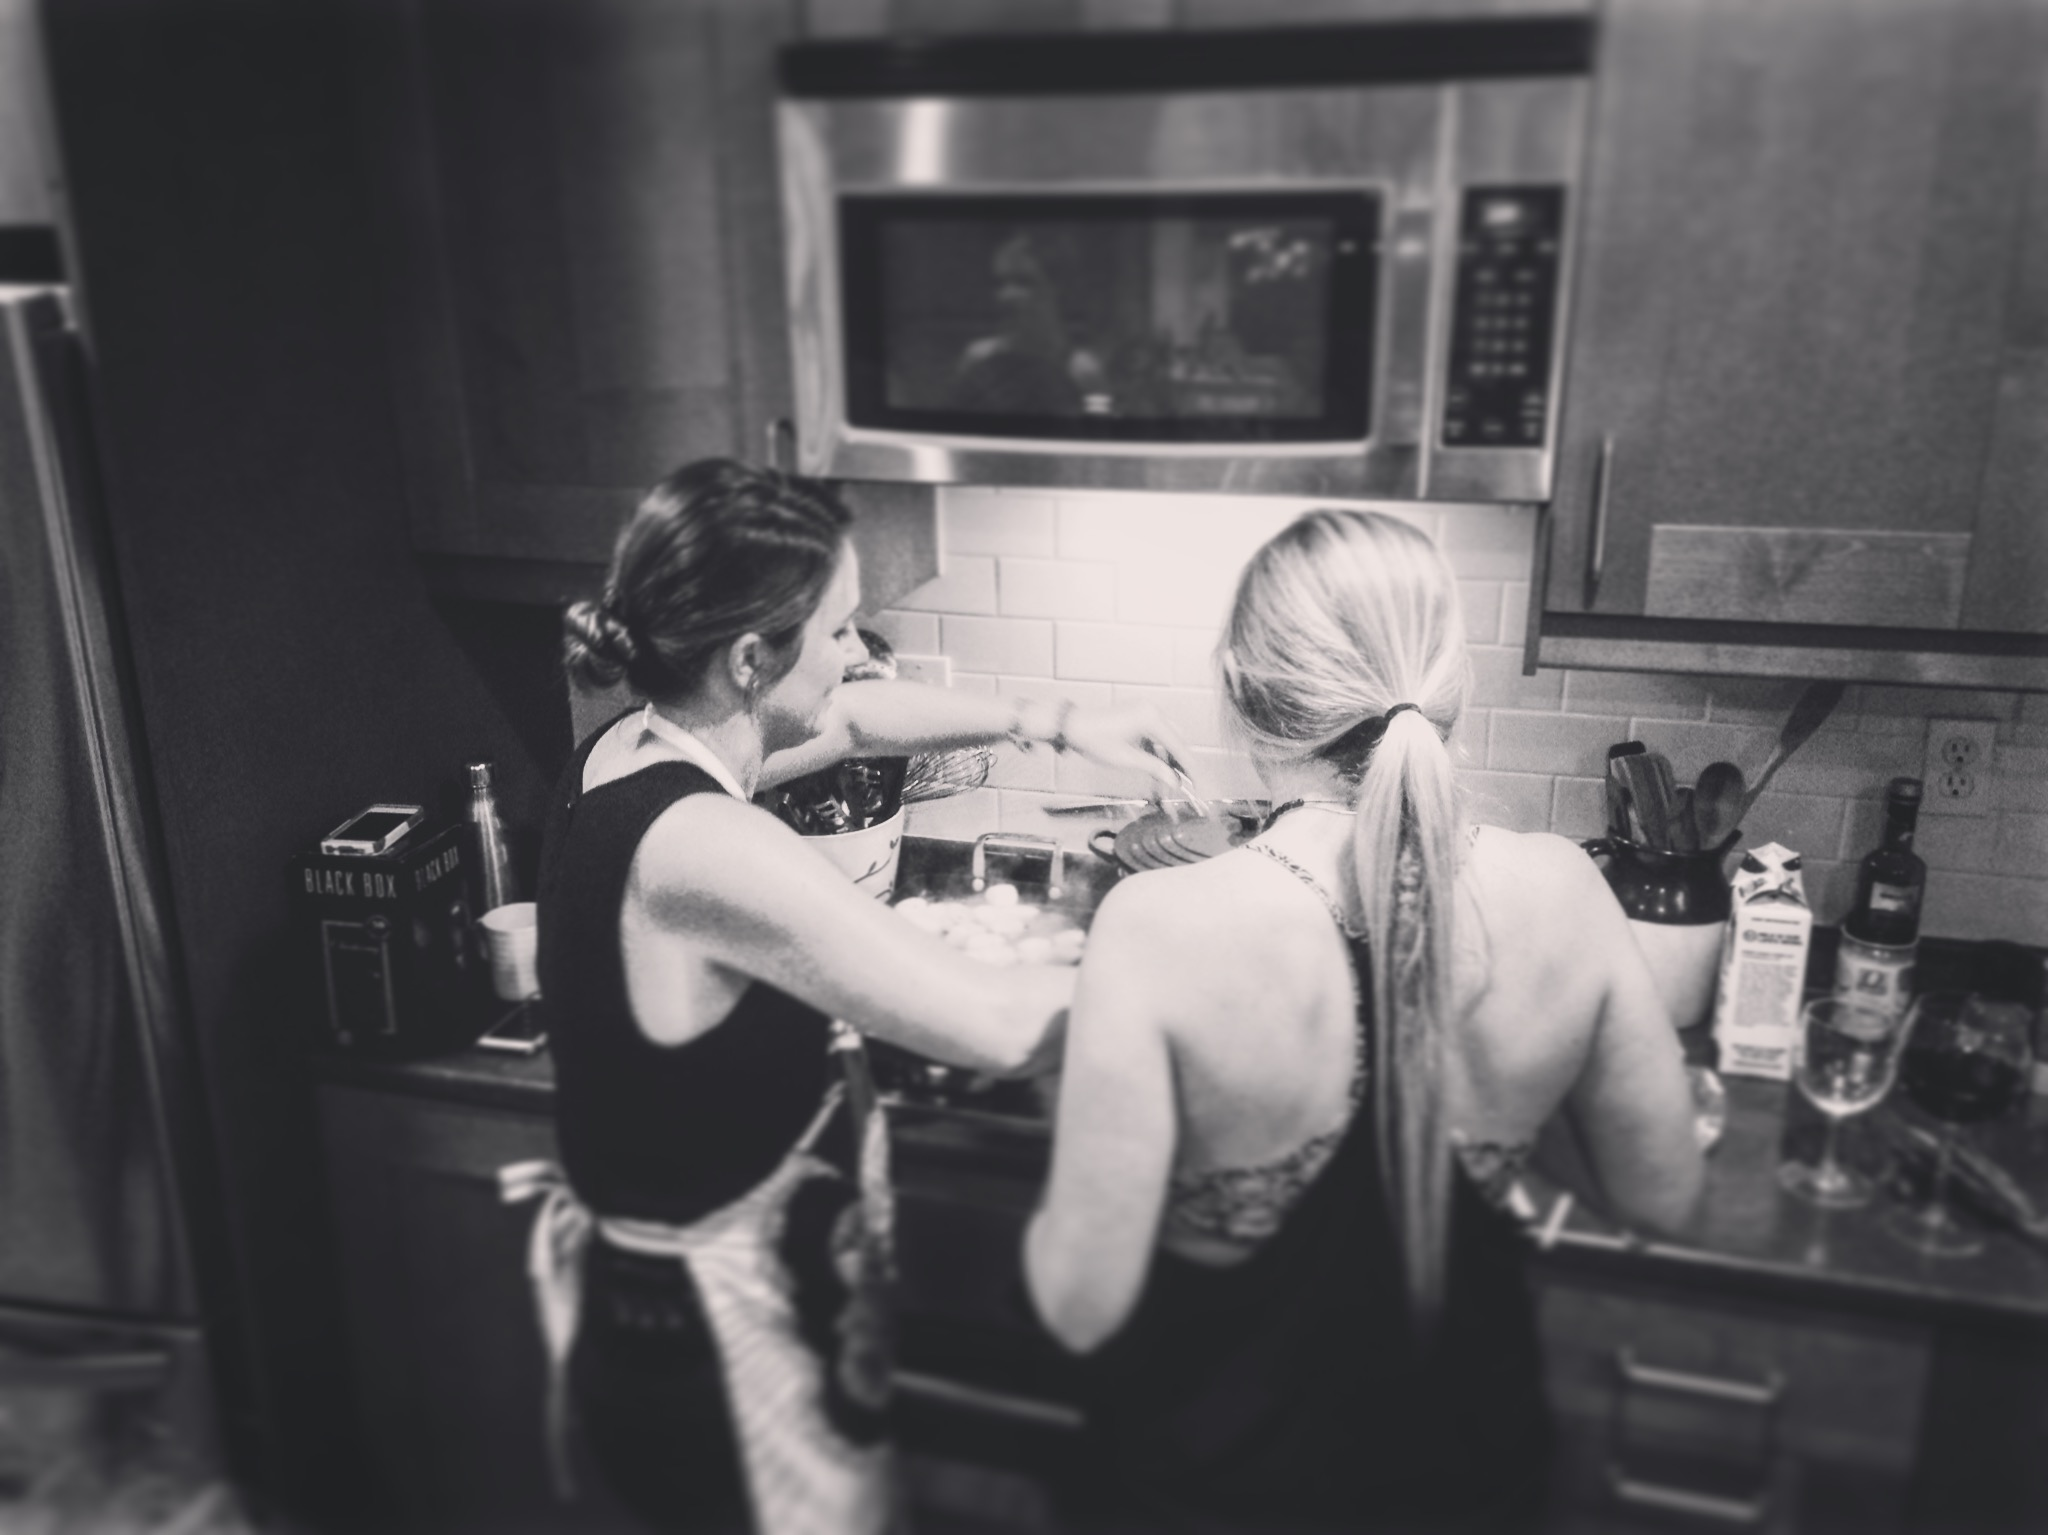 molly and karli in the kitchen.jpg